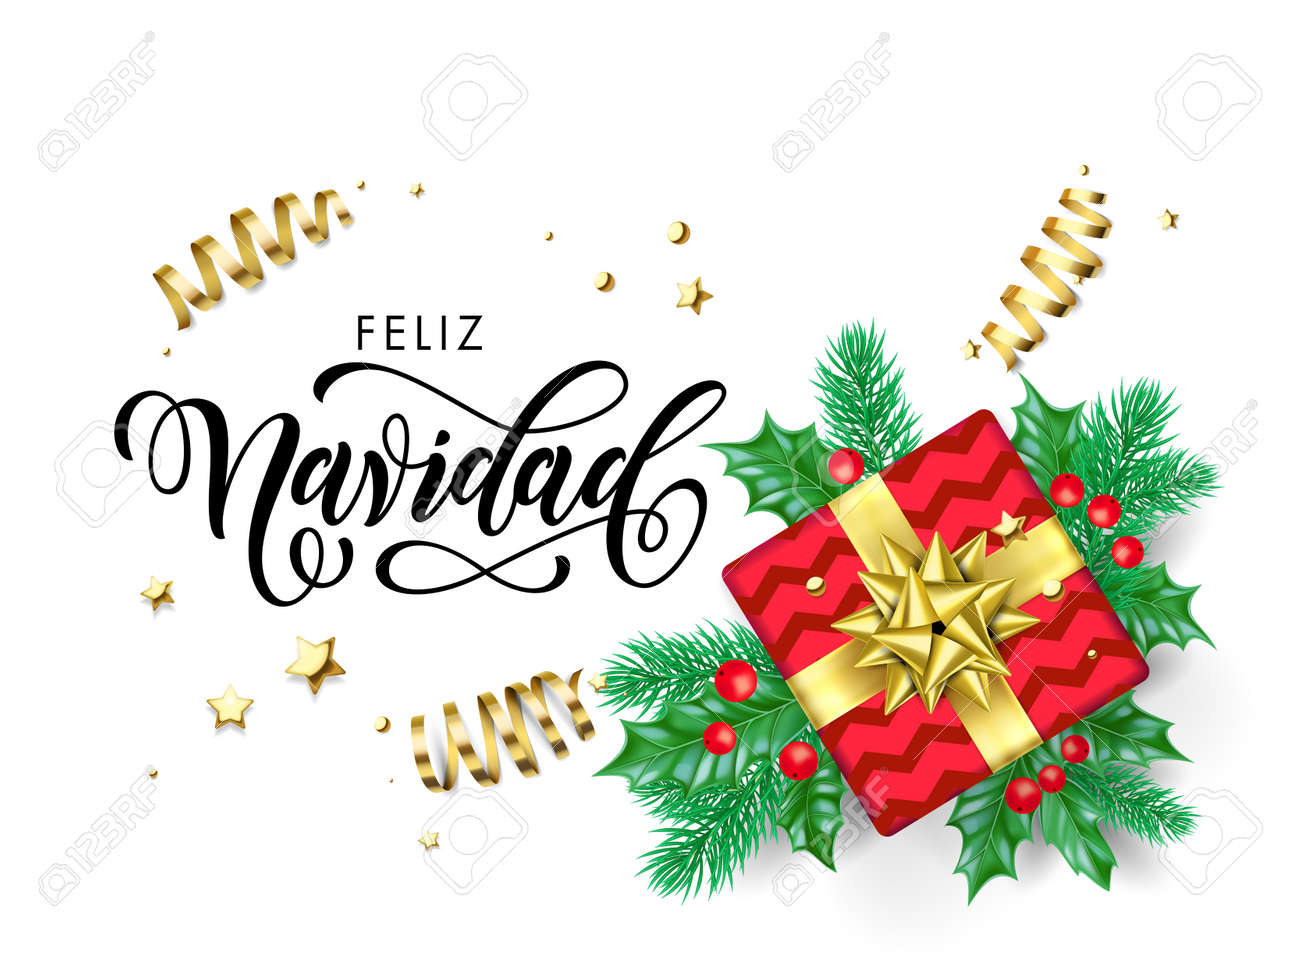 Christmas In Spanish.Feliz Navidad Merry Christmas Spanish Calligraphy Hand Drawn